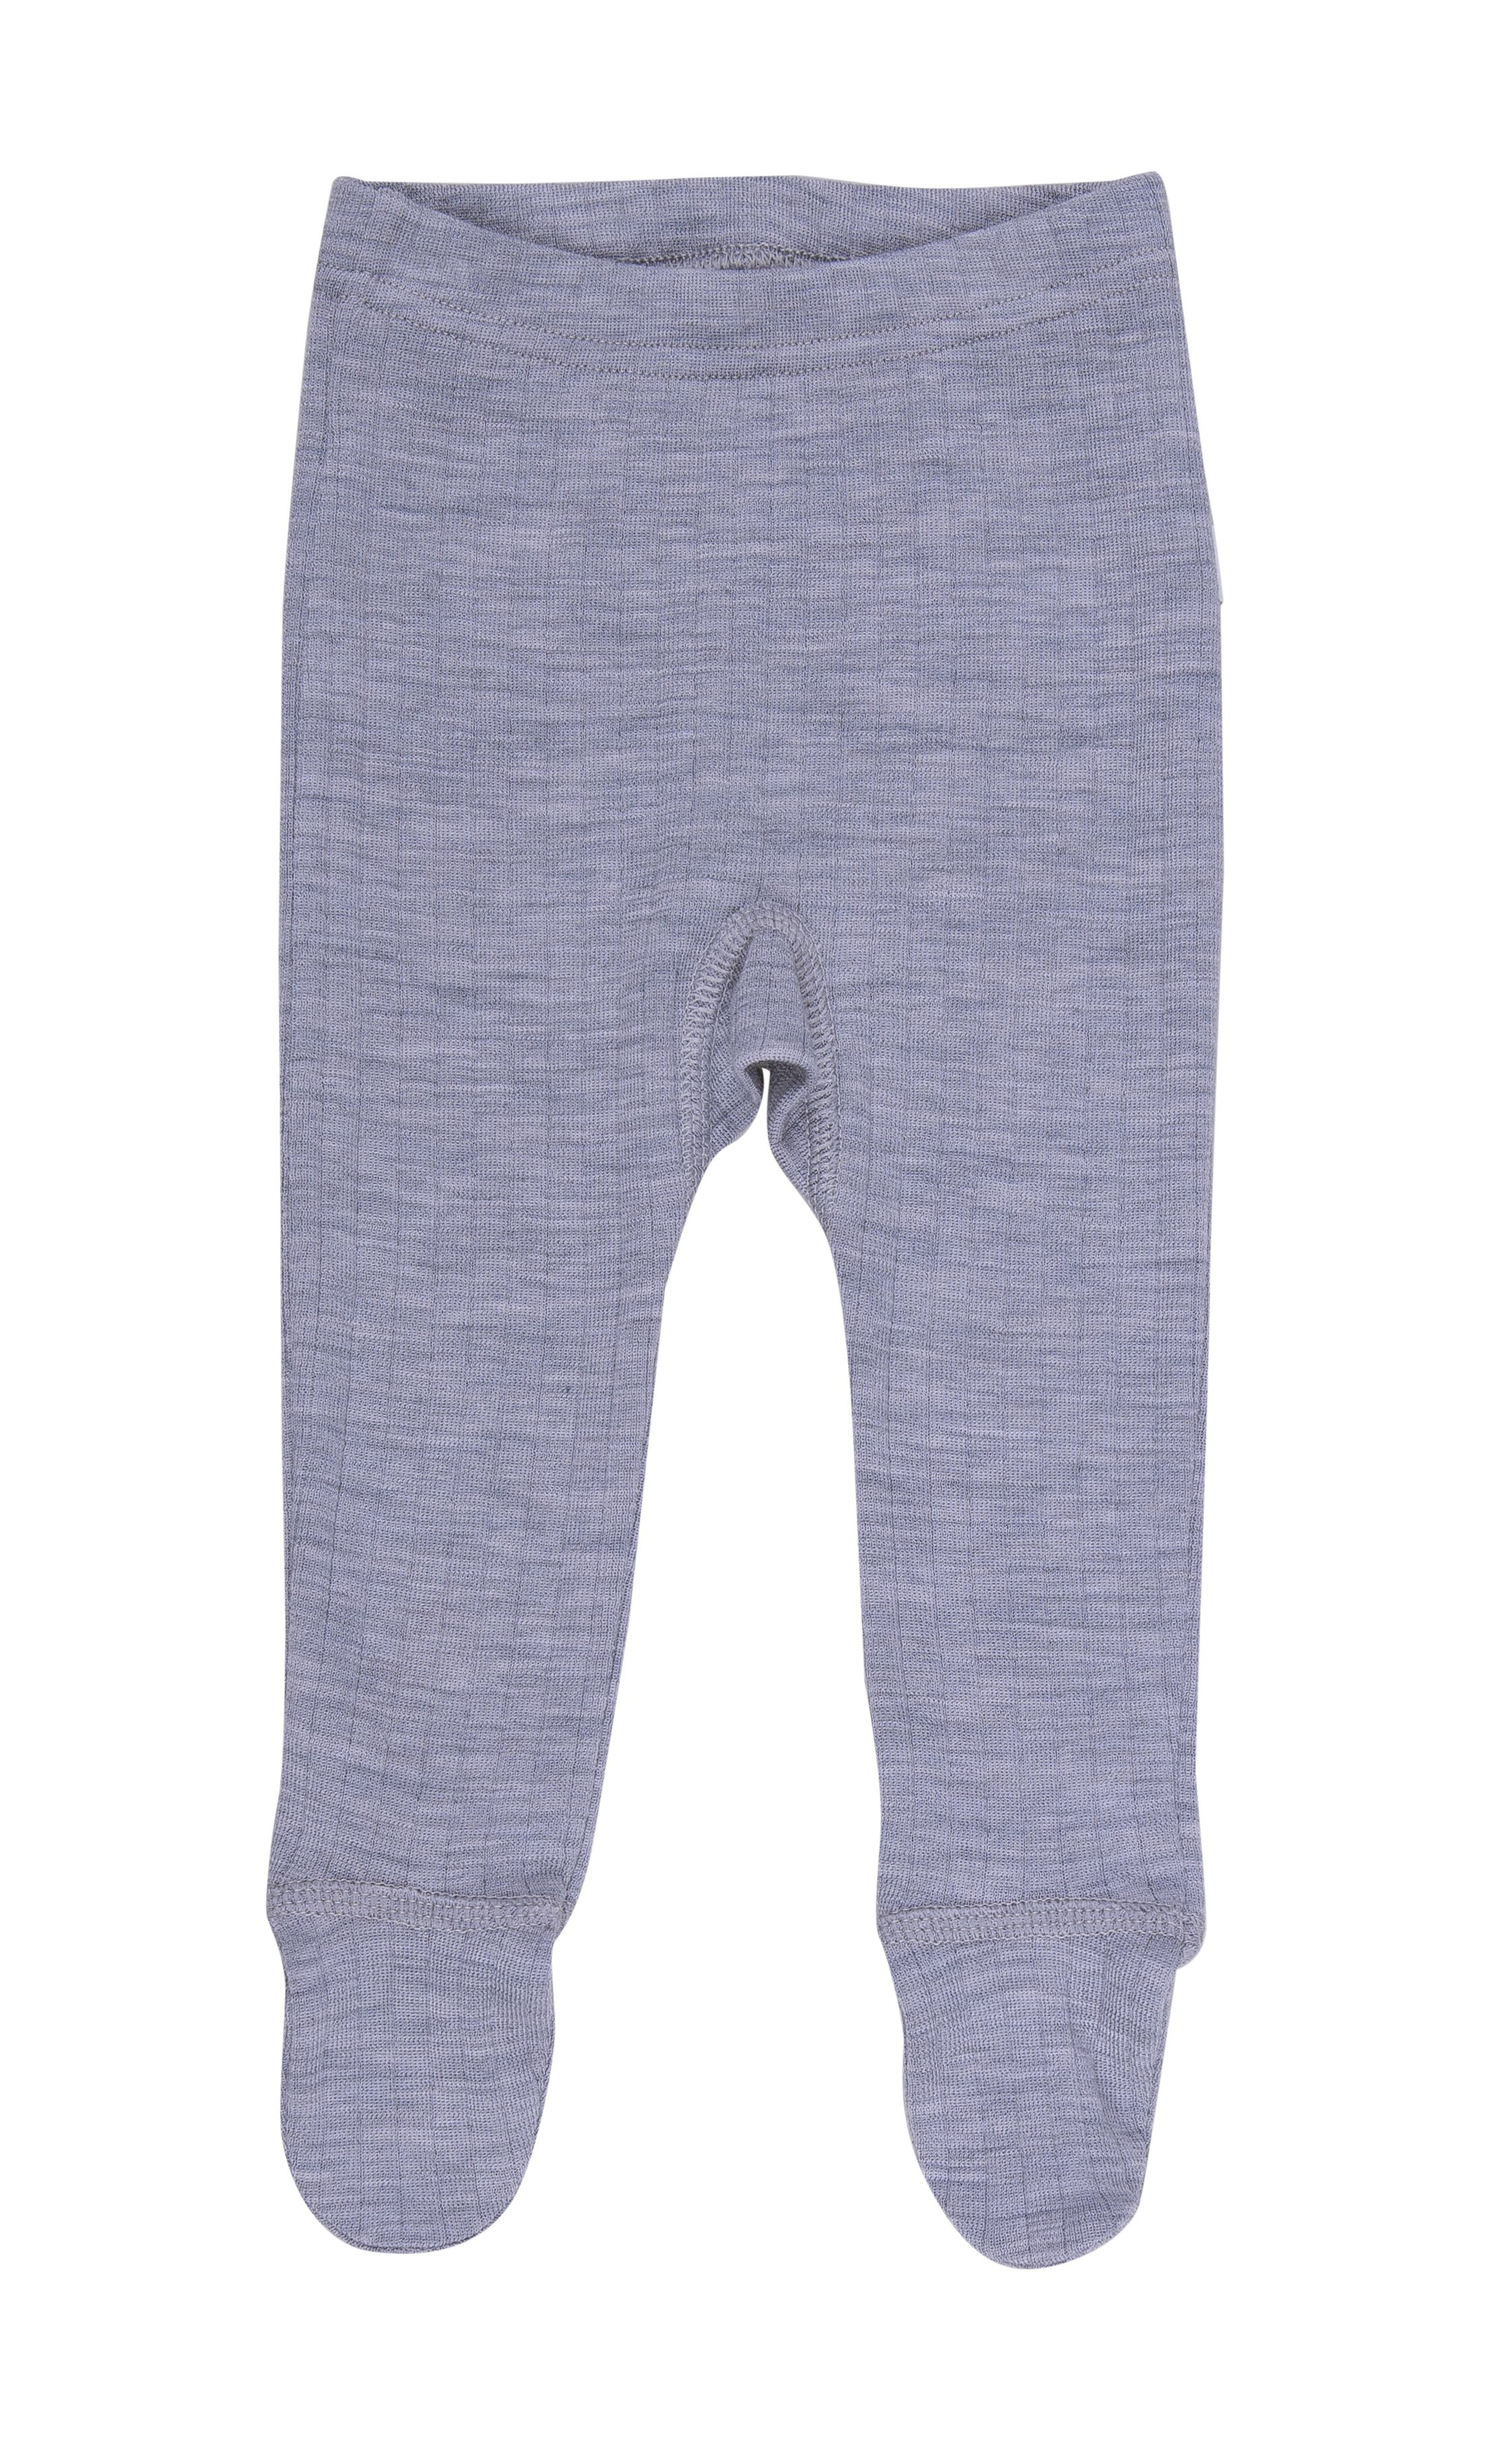 Image of   Leggings m. fod fra Joha - Uld - Grey melange